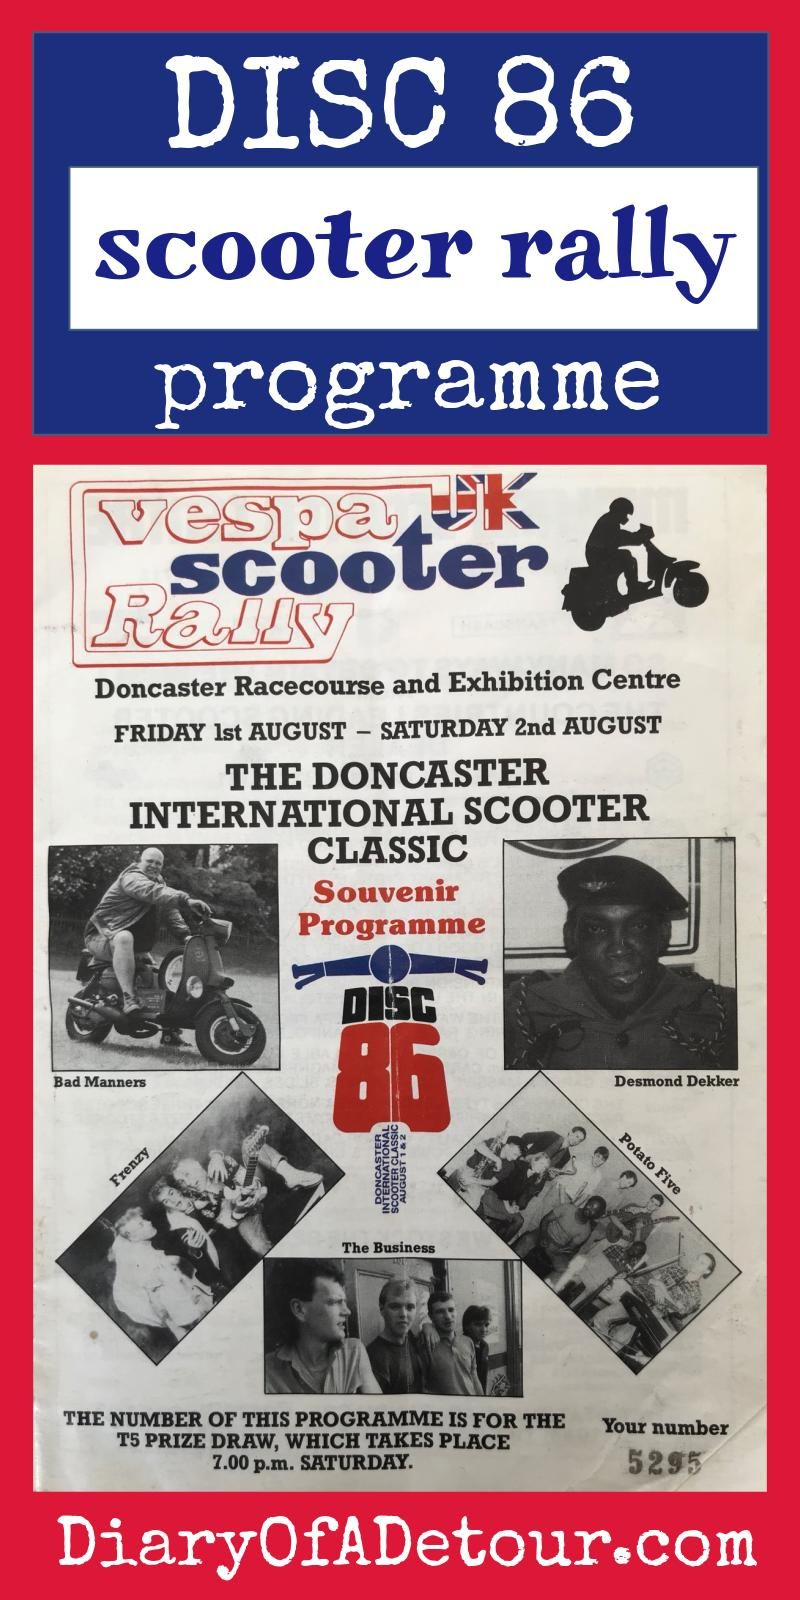 1986 Doncaster scooter rally programme